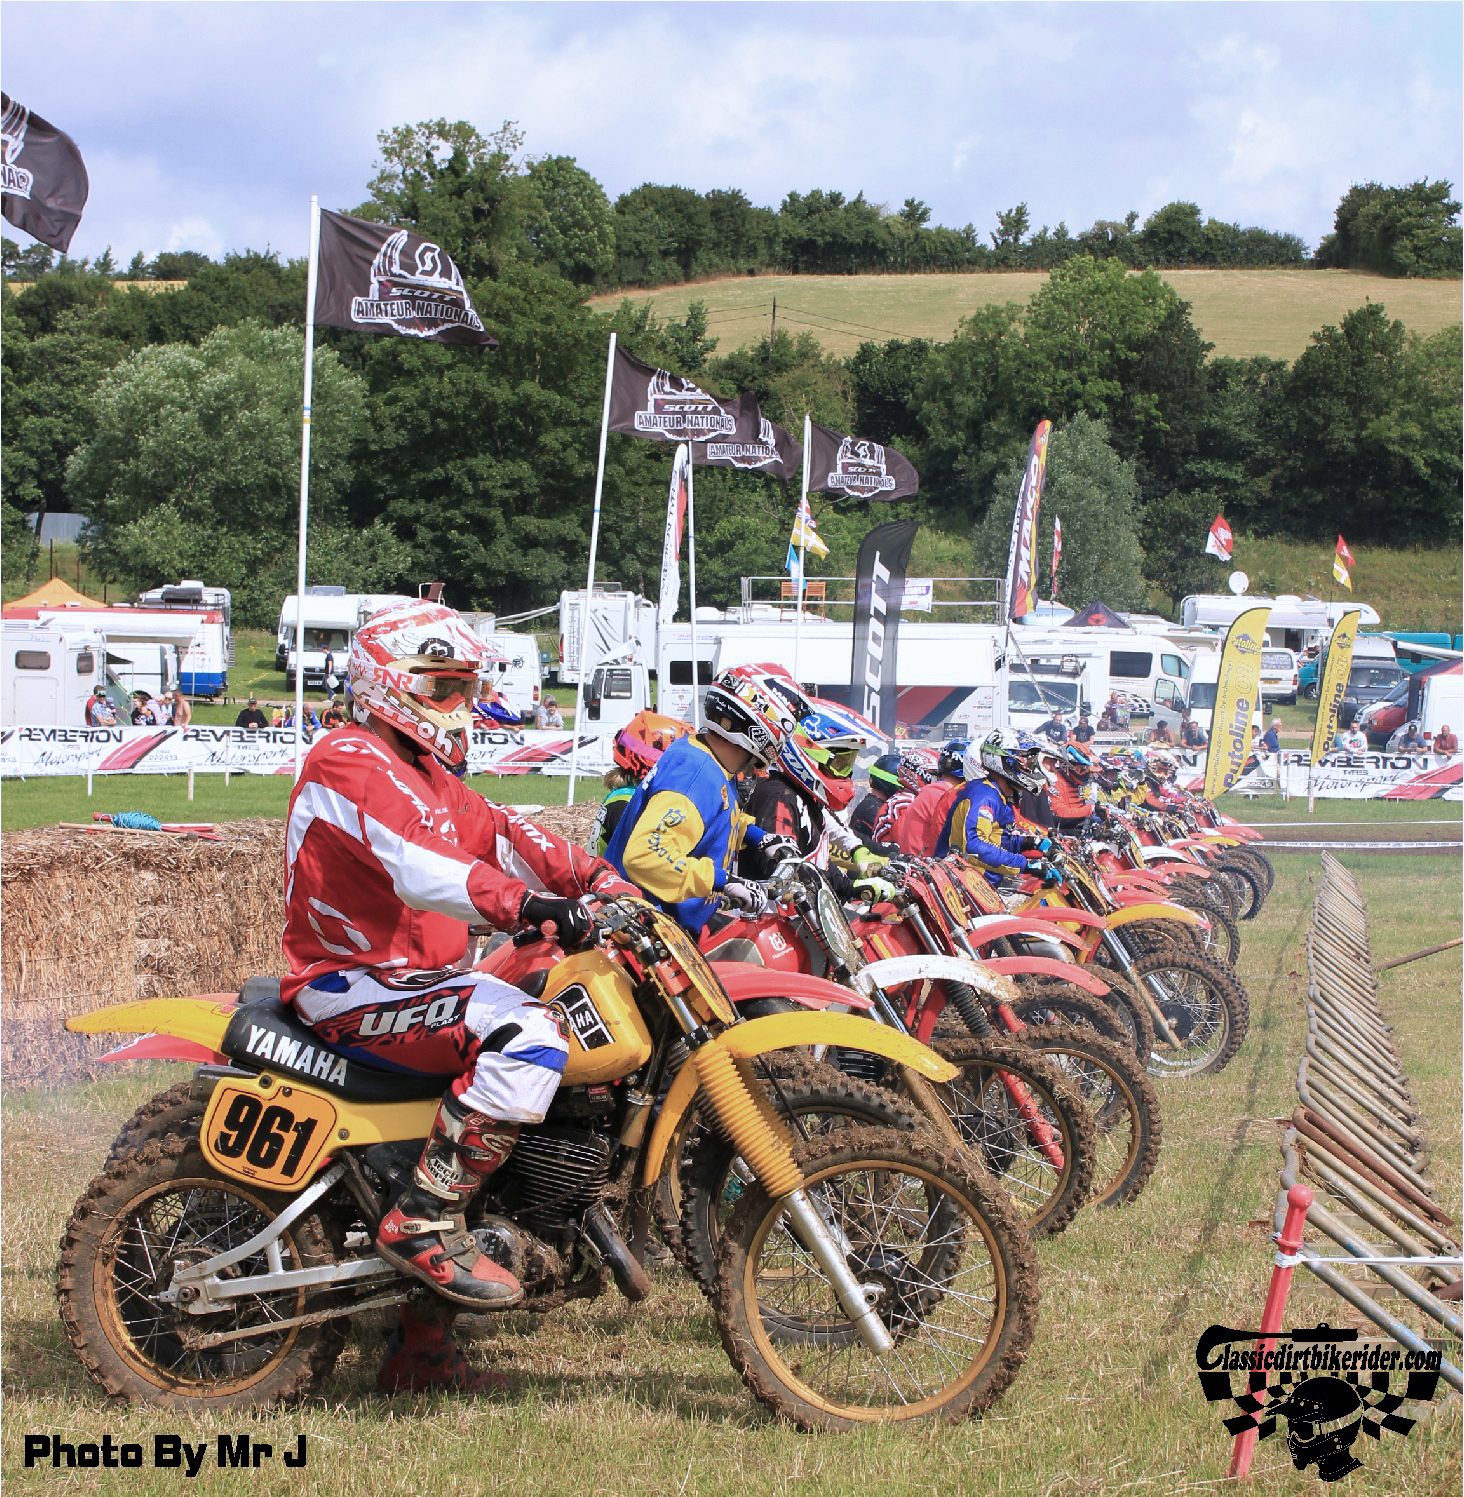 king of the castle 2015 photos Farleigh Castle twinshock motocross classicdirtbikerider.com 25